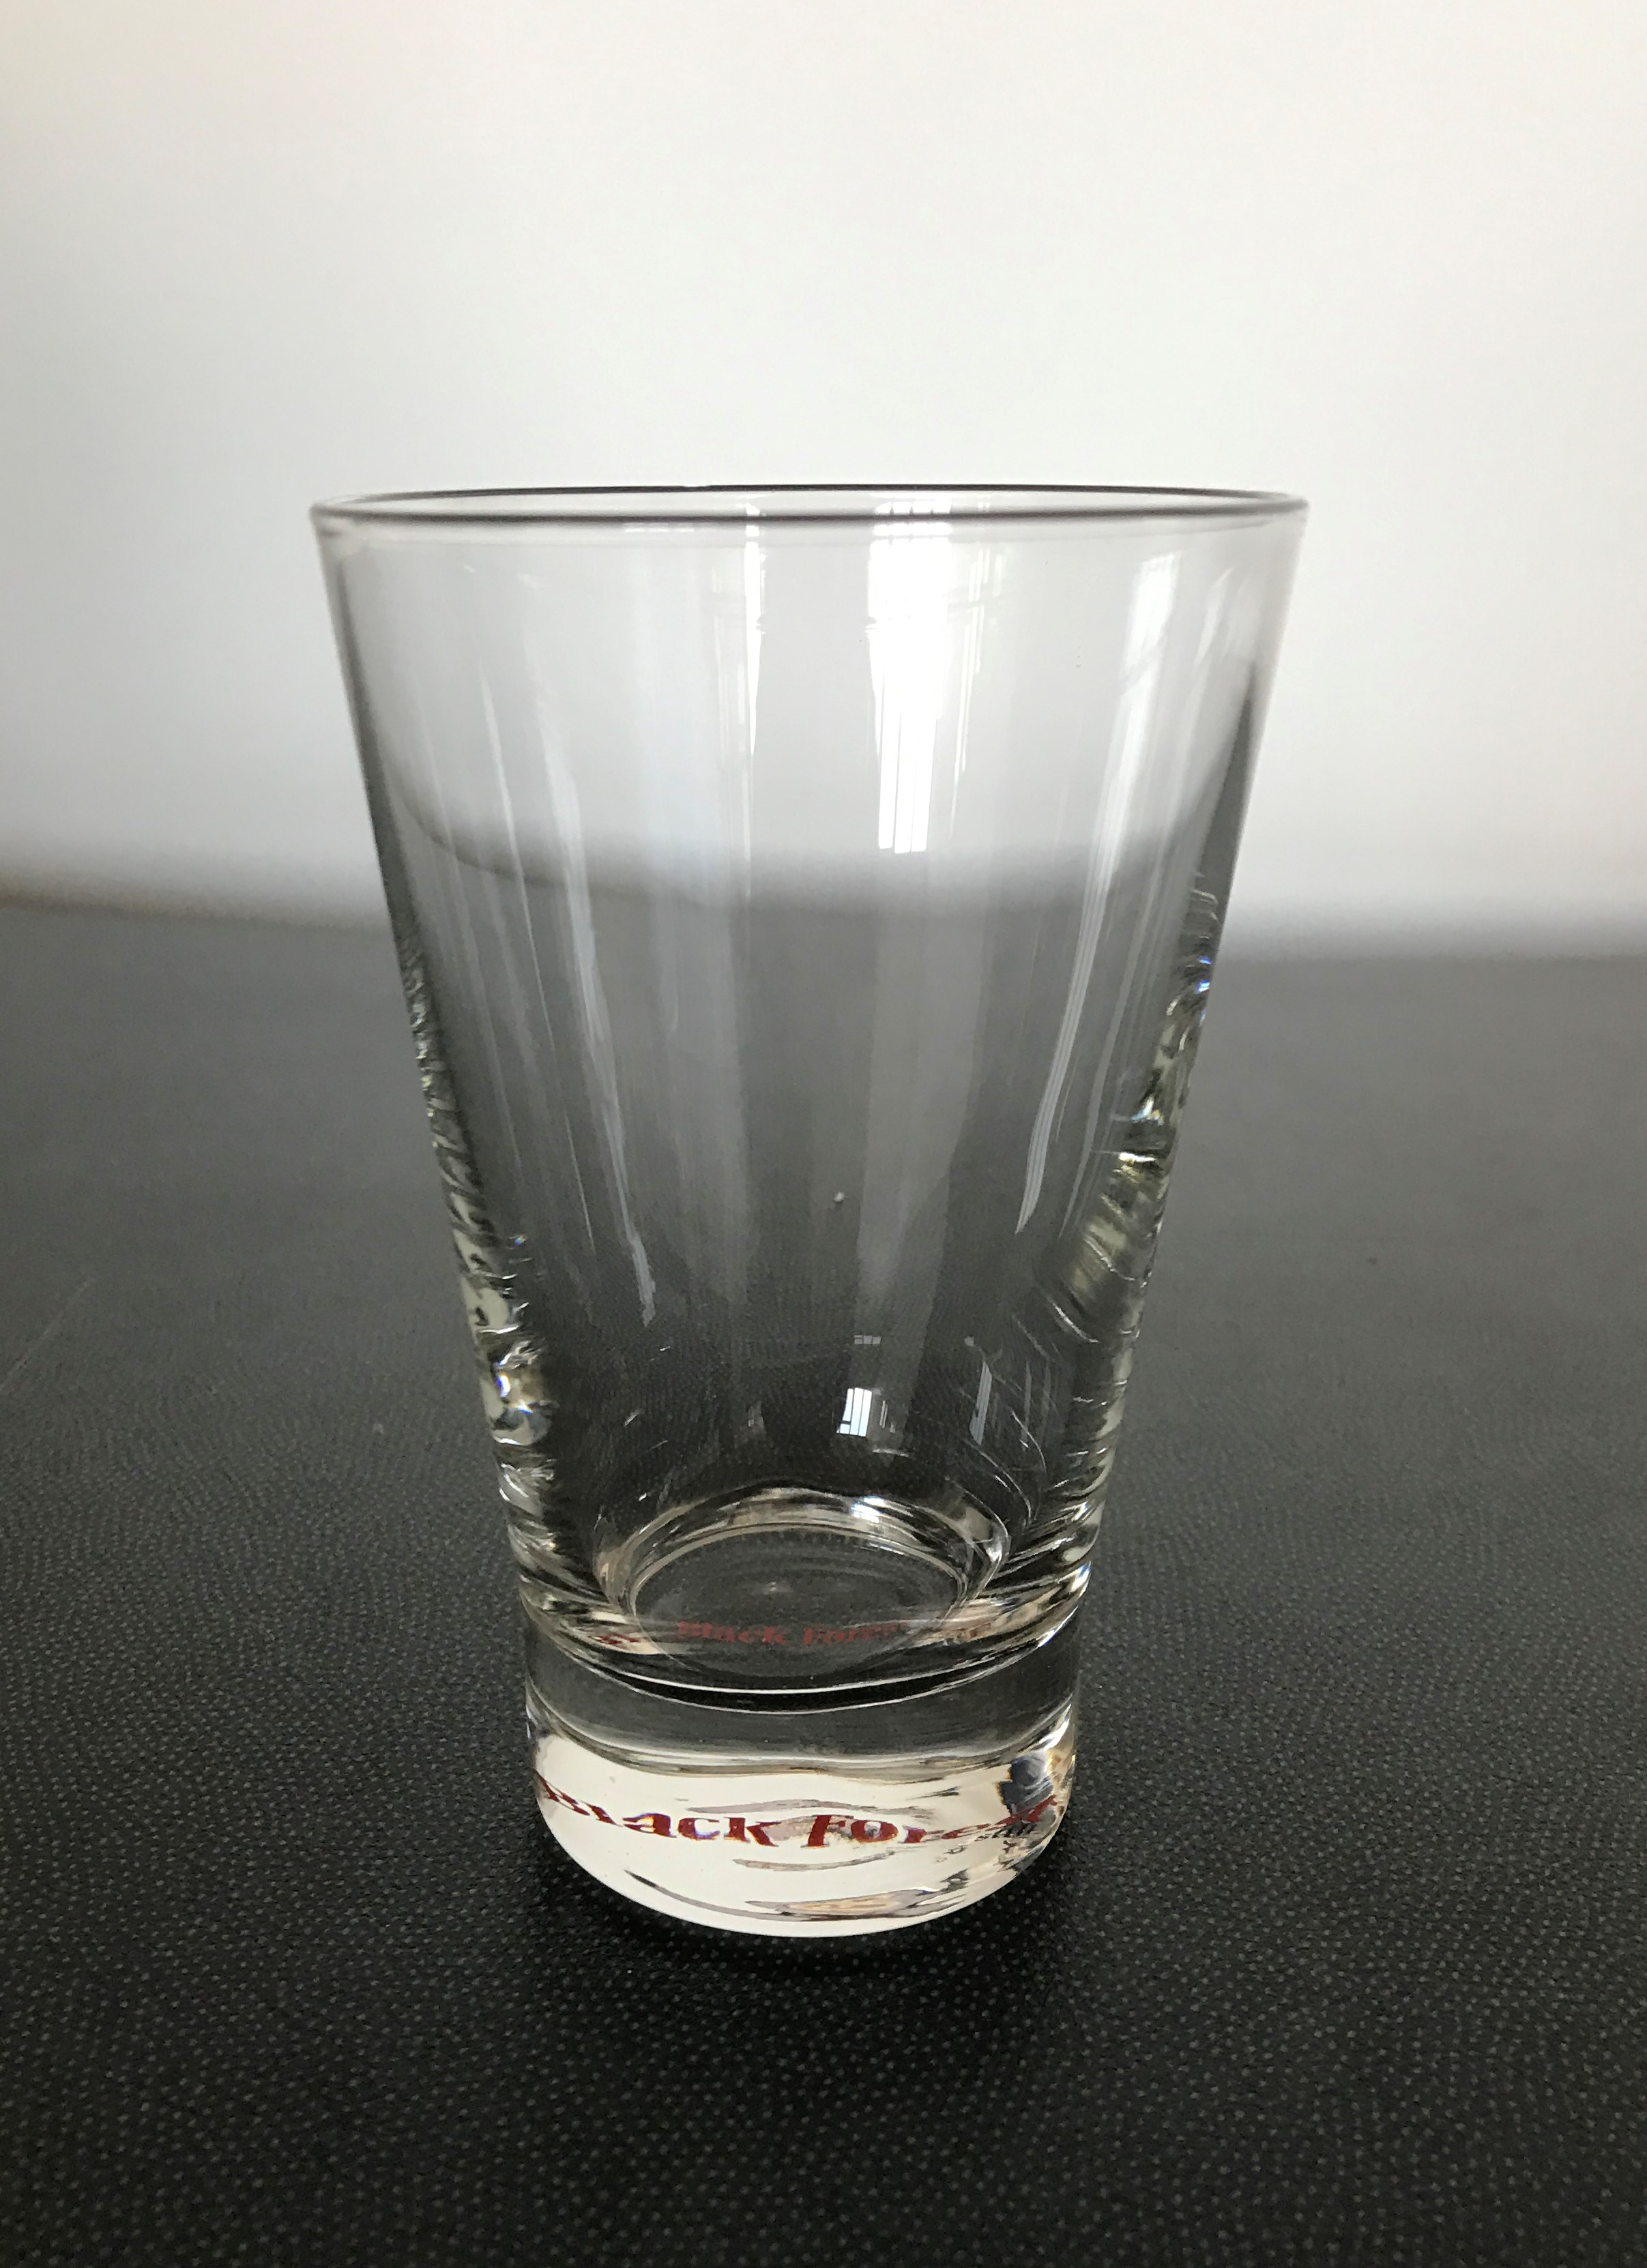 Wasserglas Black Forest/Peterstaler 0,2l